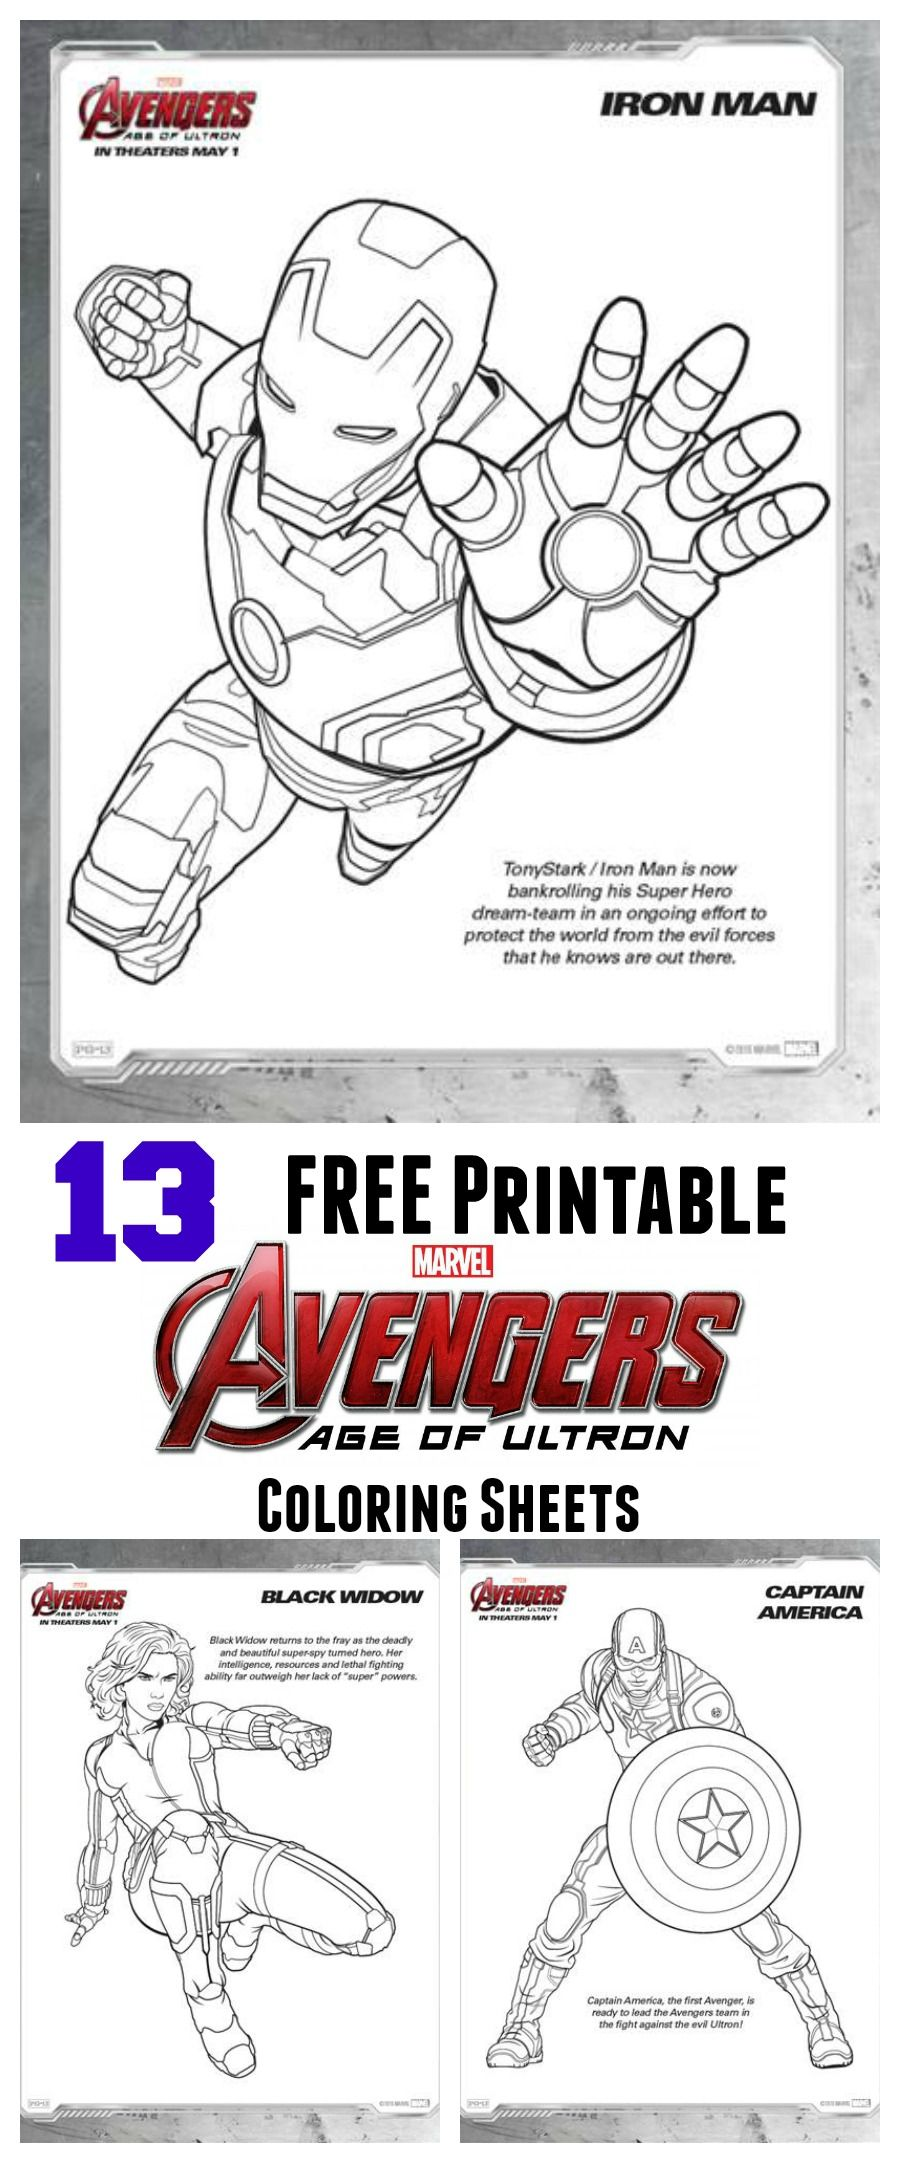 Print FREE Age of Ultron coloring sheets!   My Best Pins   Pinterest